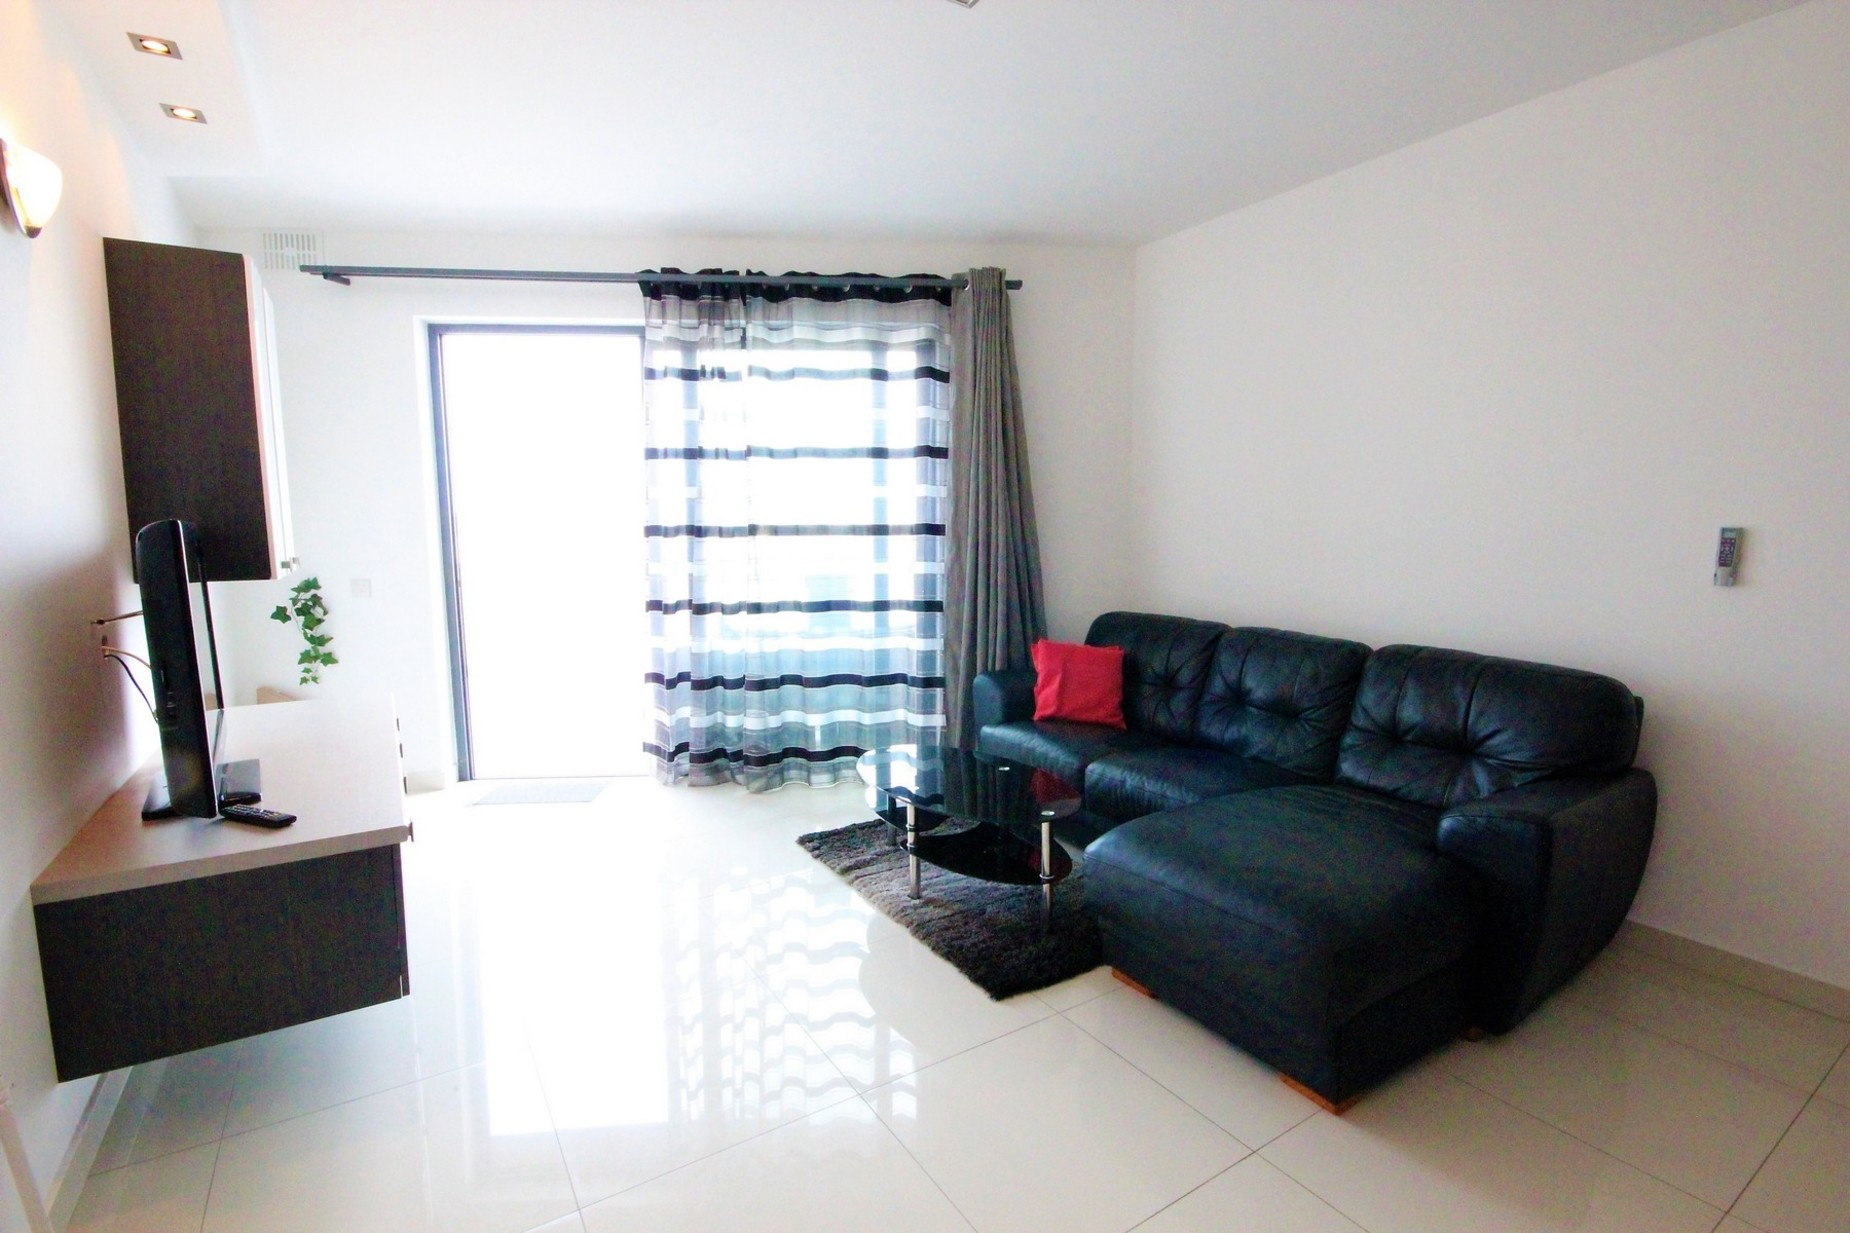 2 bed Penthouse For Rent in Rabat, Rabat - thumb 2